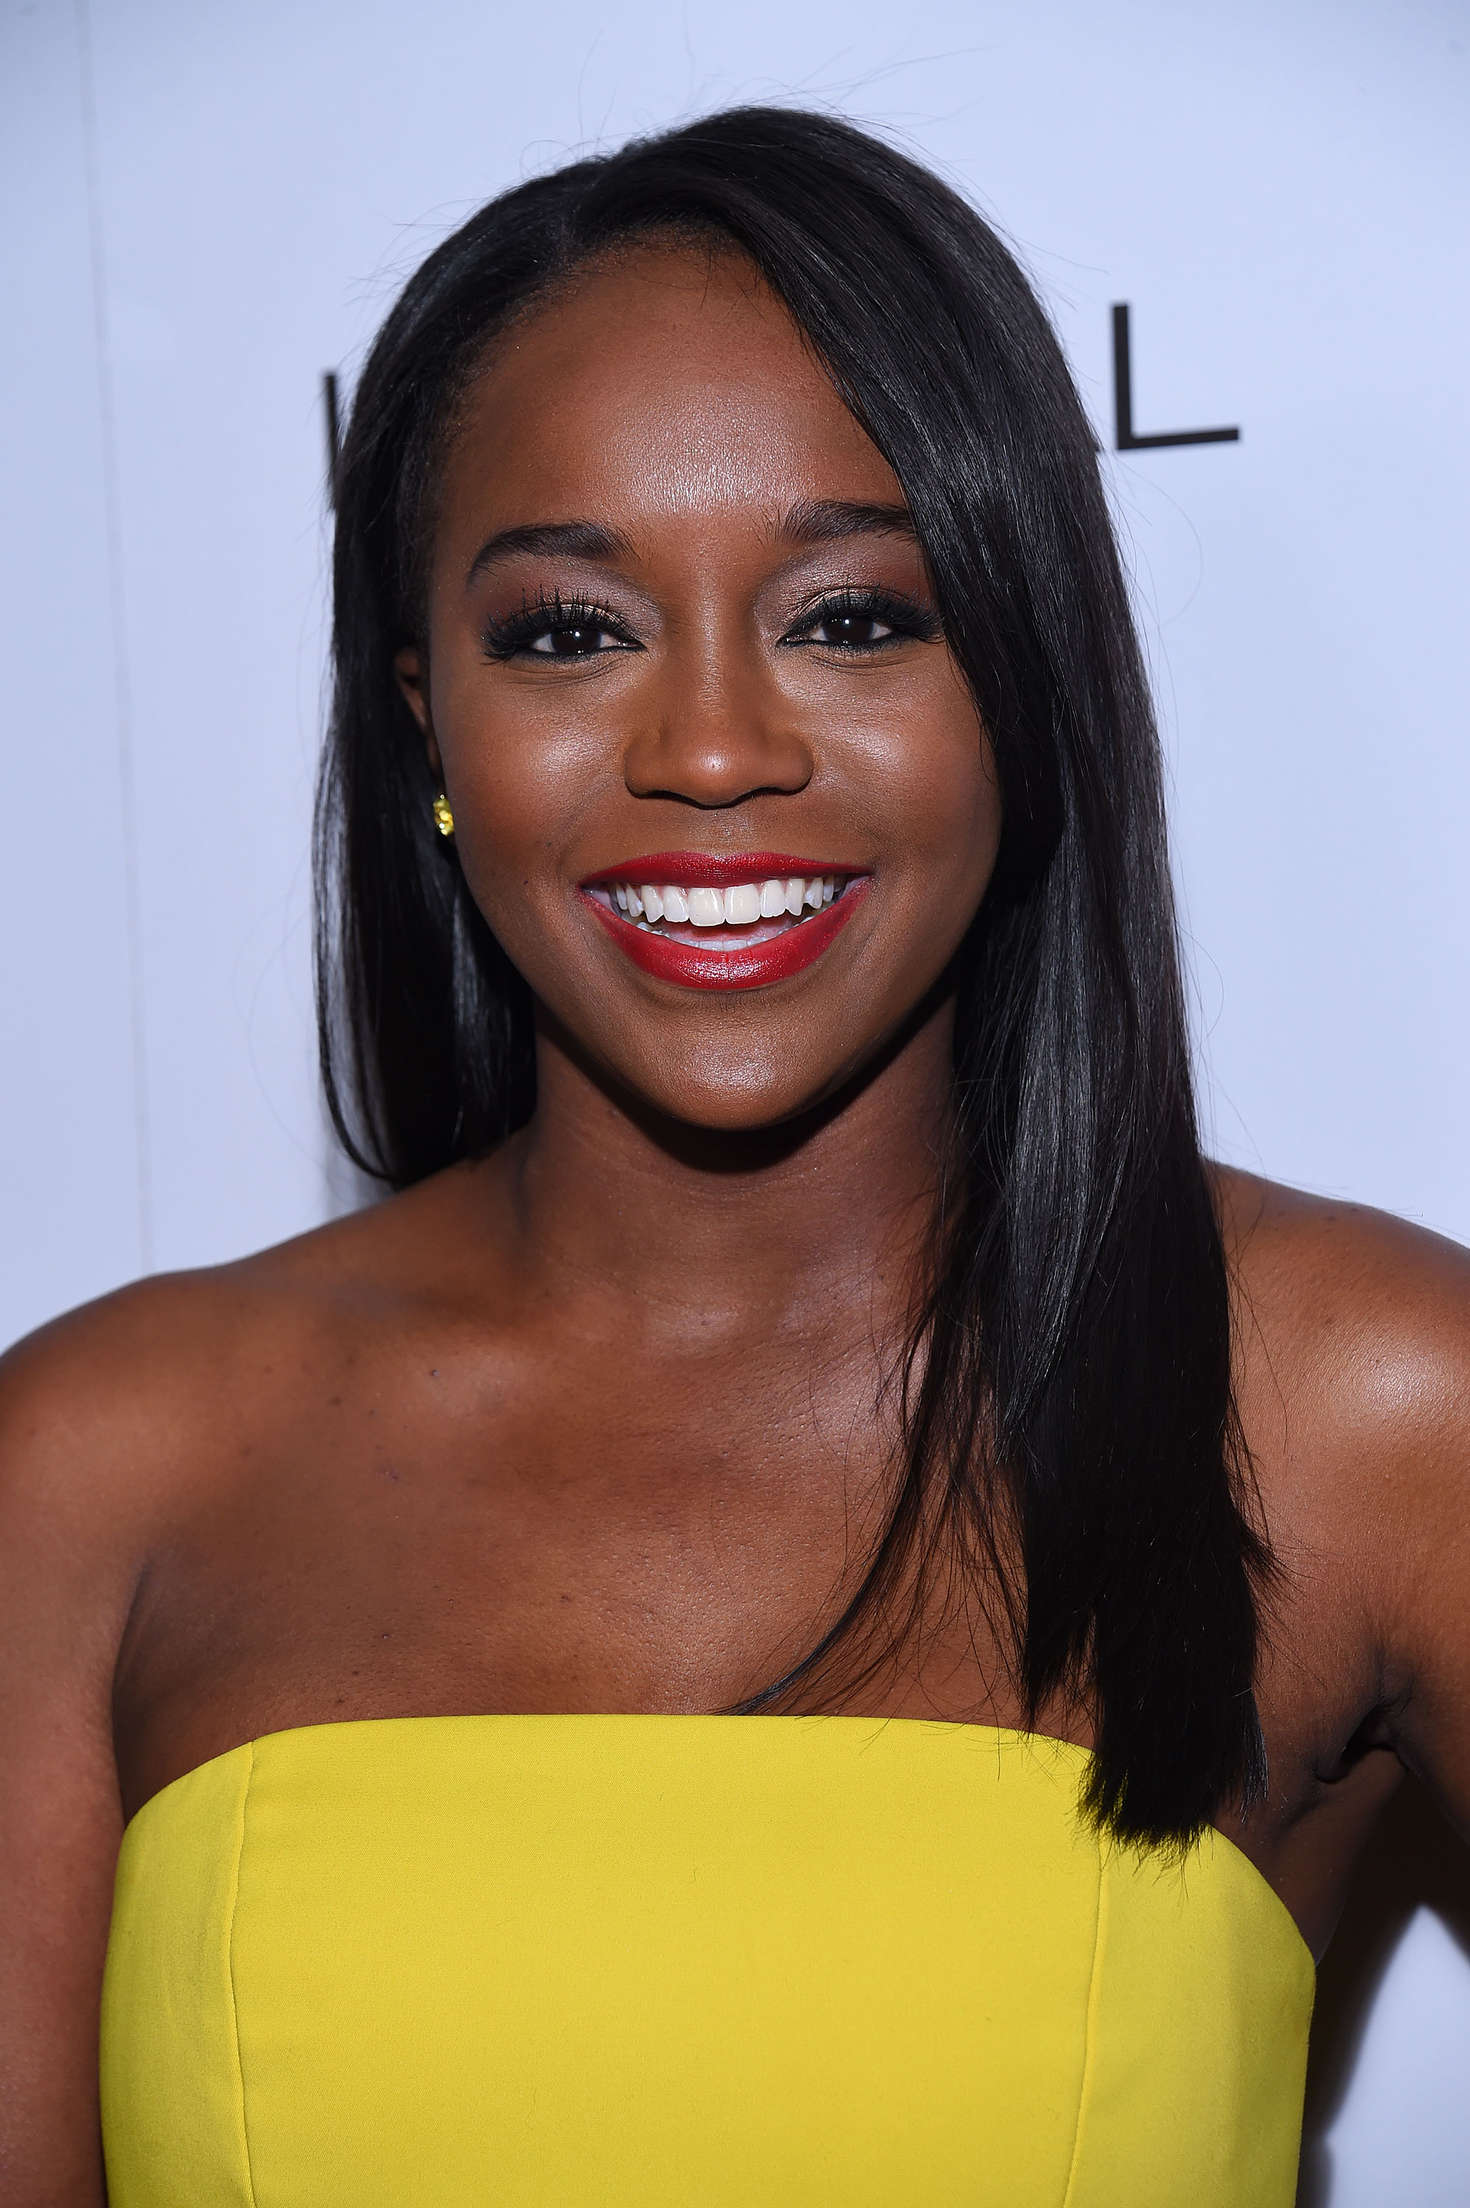 Aja Naomi King Inaugural Image Maker Awards hosted by Marie Claire in Los Angeles